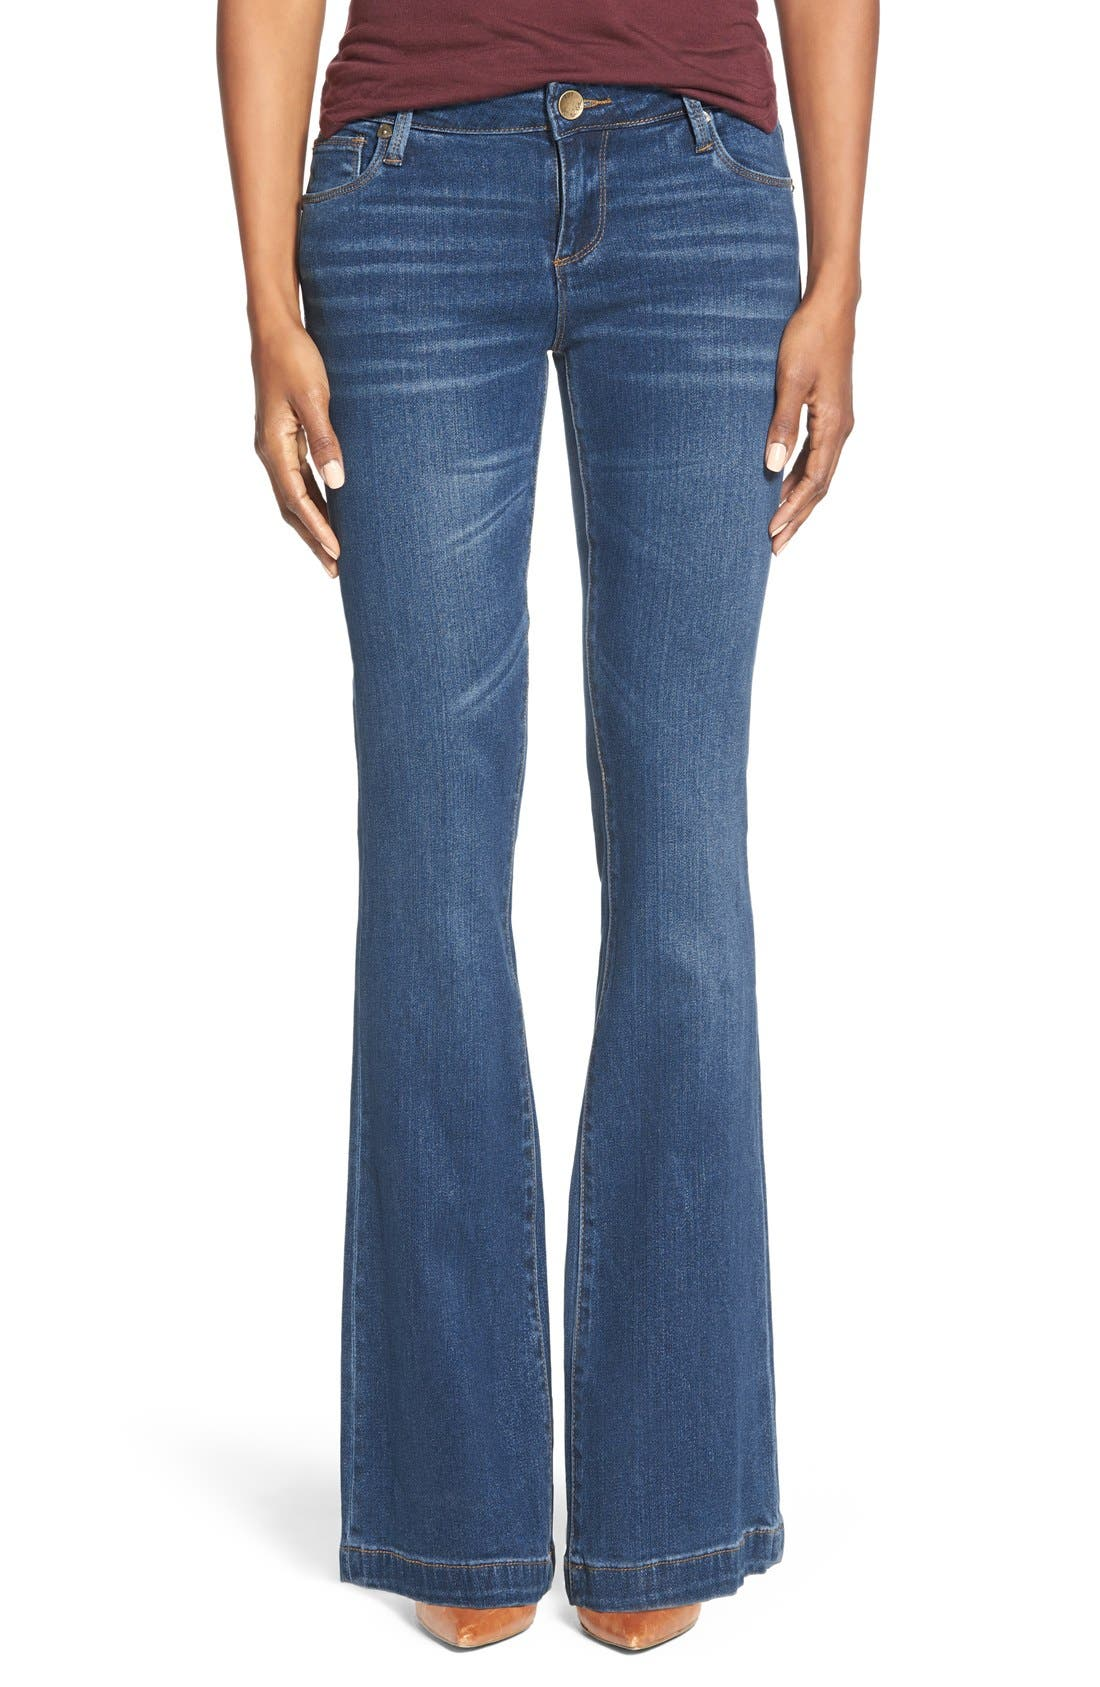 Main Image - KUT from the Kloth 'Chrissy' Stretch Flare Leg Jeans (Inclusion)